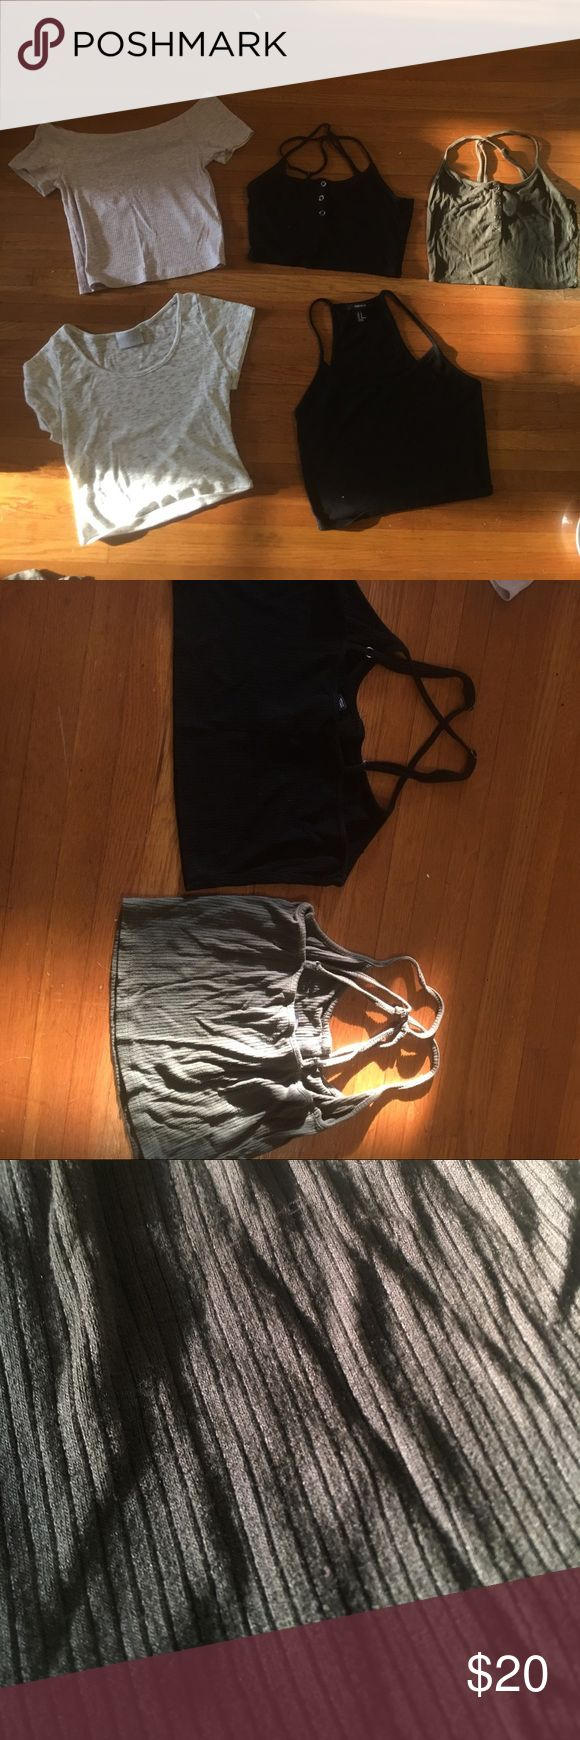 Crop Top Bundle Bundle crop tops! All gently used. From varied brands such as Forever21, PacSun, H&M. The top left is a soft pink color and off the shoulder. Though the bottom black and white top are both tagged as medium they run very small. I am an extra small/small in nearly everything and sized up on these. Willing to separate bundle and change price if you don't want all of them! Let me know if you have any questions :) NOT ACTUALLY UO, only tagged for likes! Happy poshing Urban…